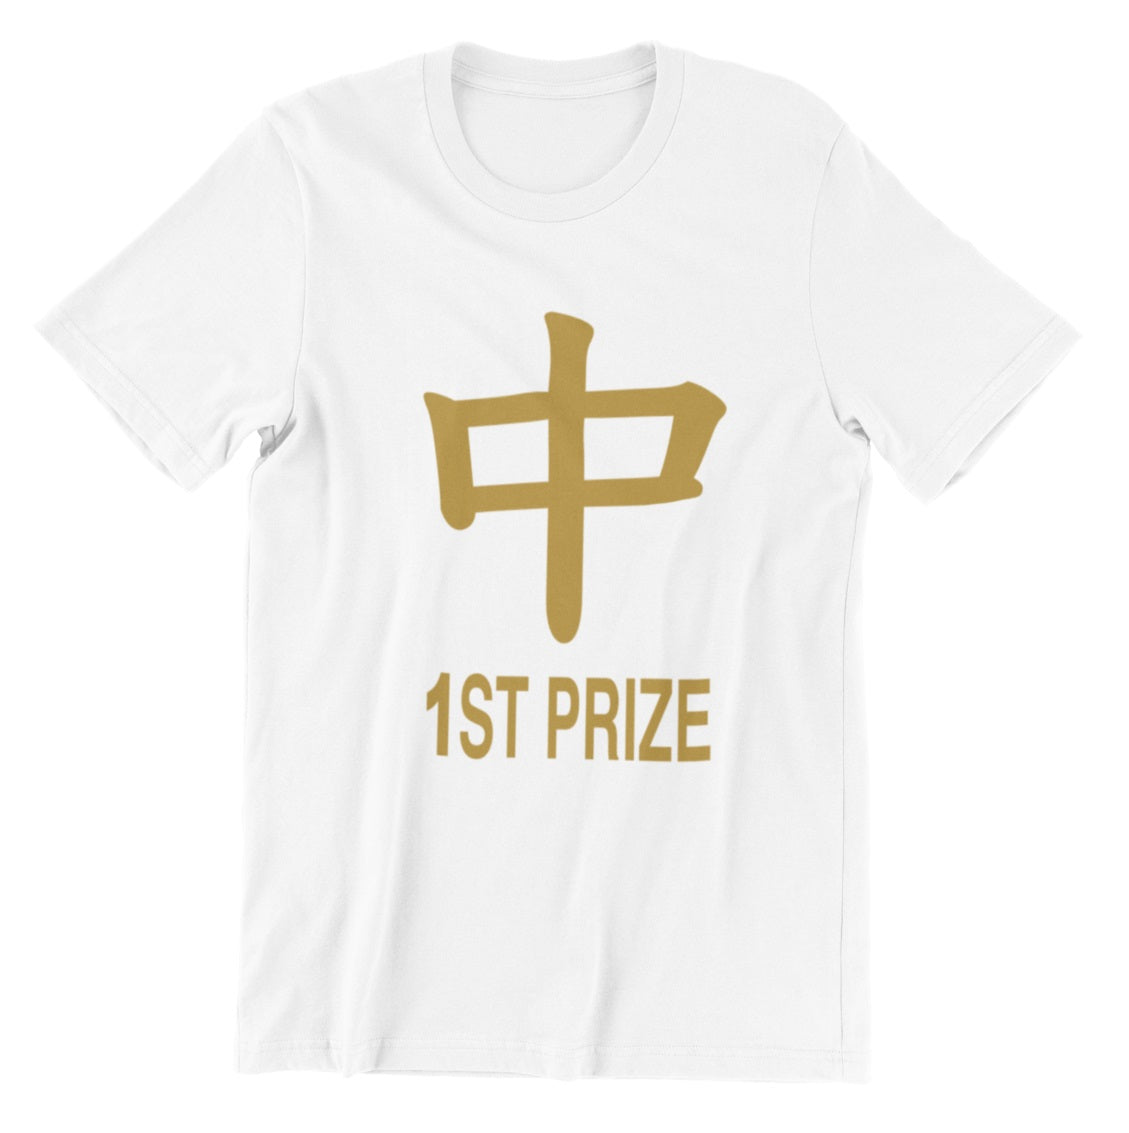 (Limited Gold Edition) Strike 1st Prize Kids Crew Neck S-Sleeve T-shirt